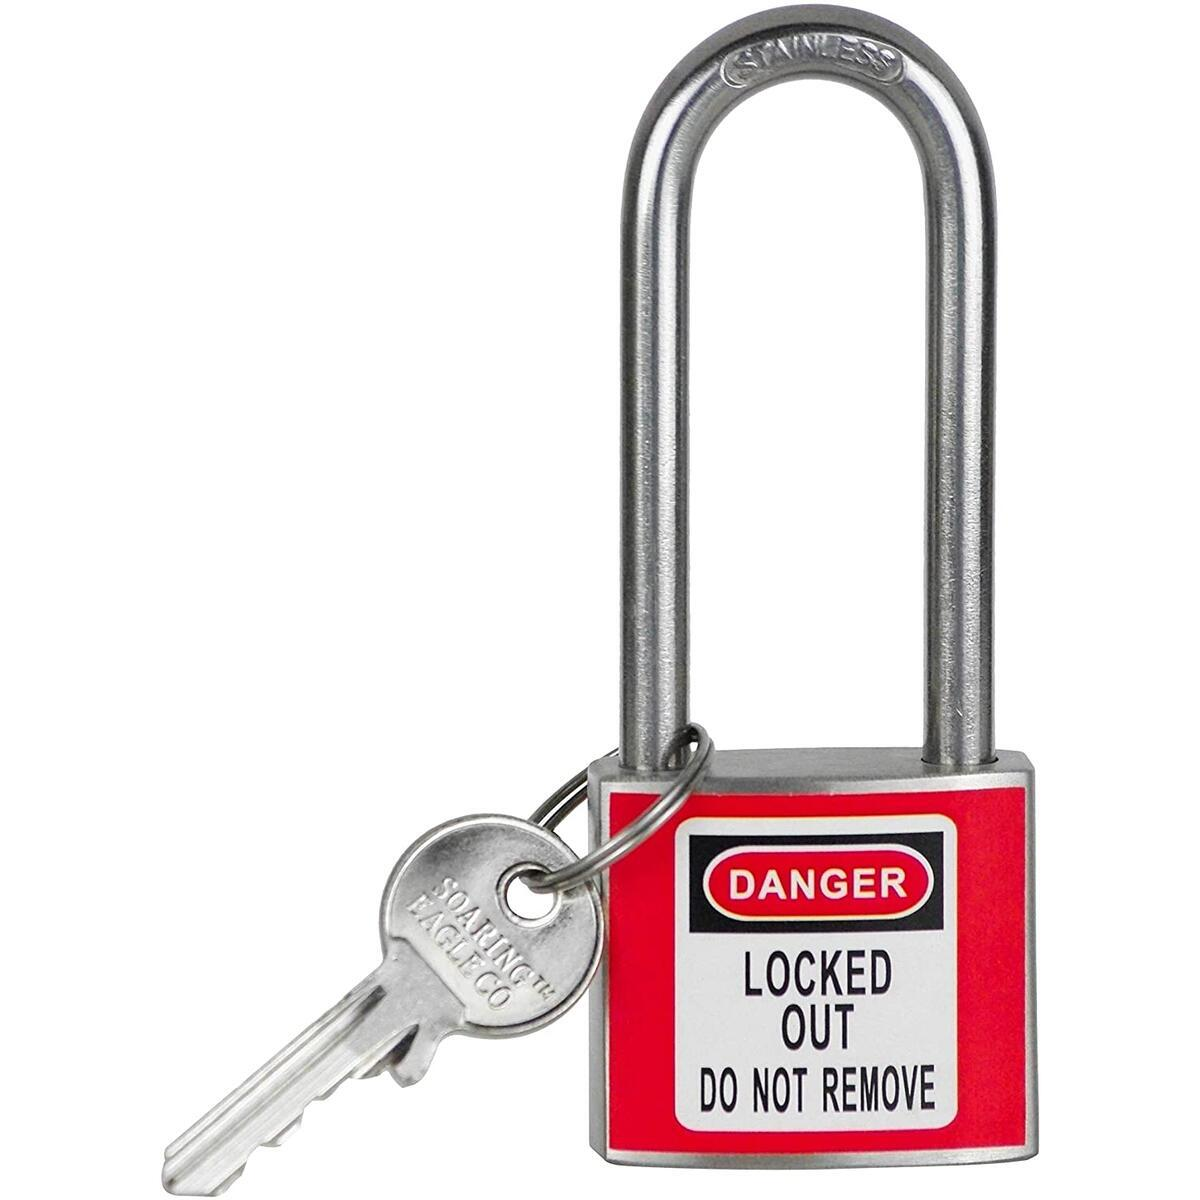 Stainless Steel Lockout Tagout Lock - 1 Red - Soaring Eagle Co